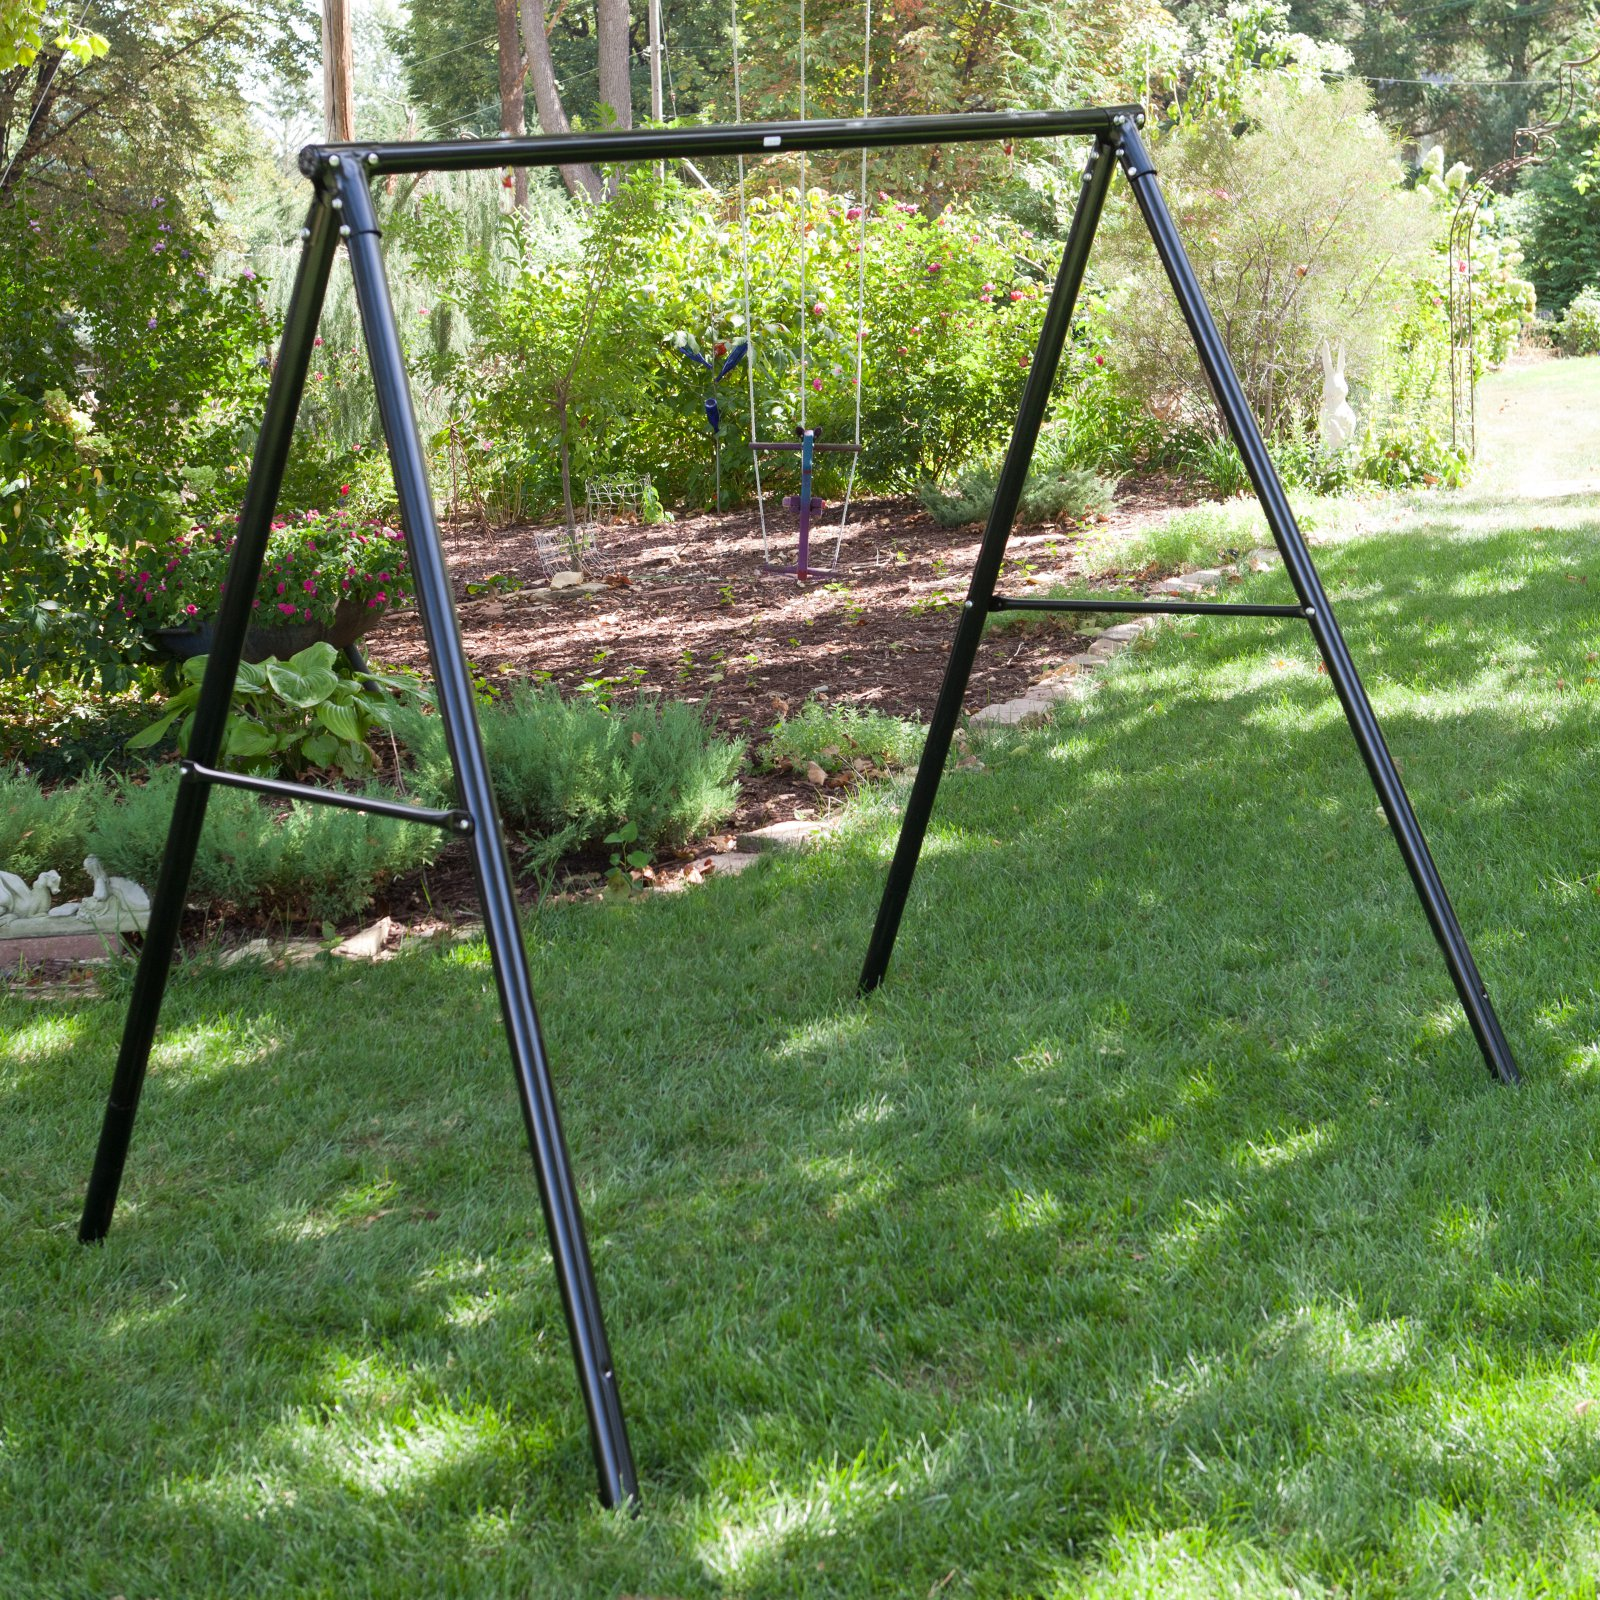 Flexible Flyer Lawn Swing Frame Black Walmart Com